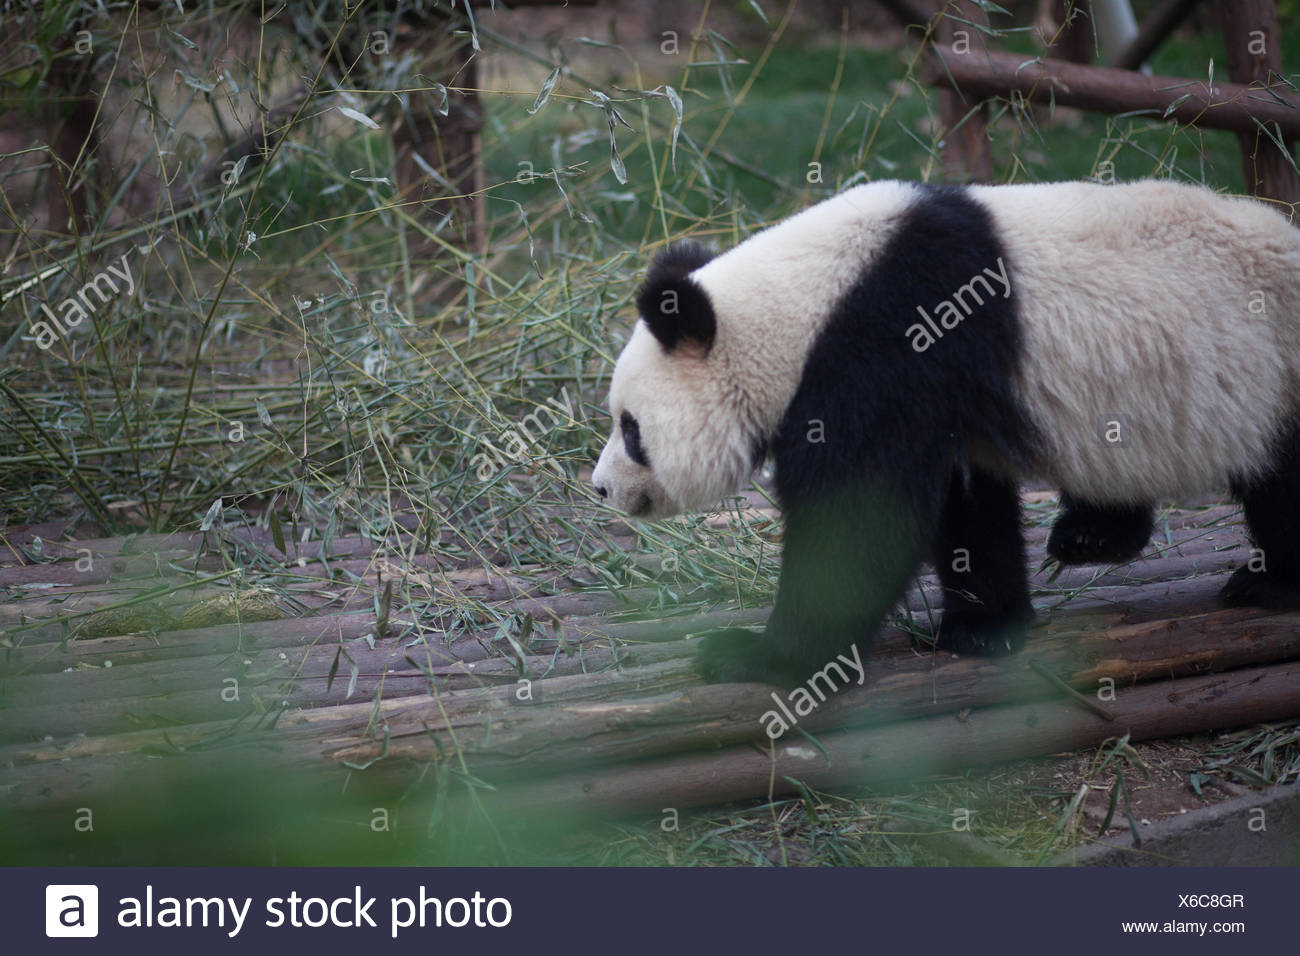 Side View Of A Panda Walking Stock Photo